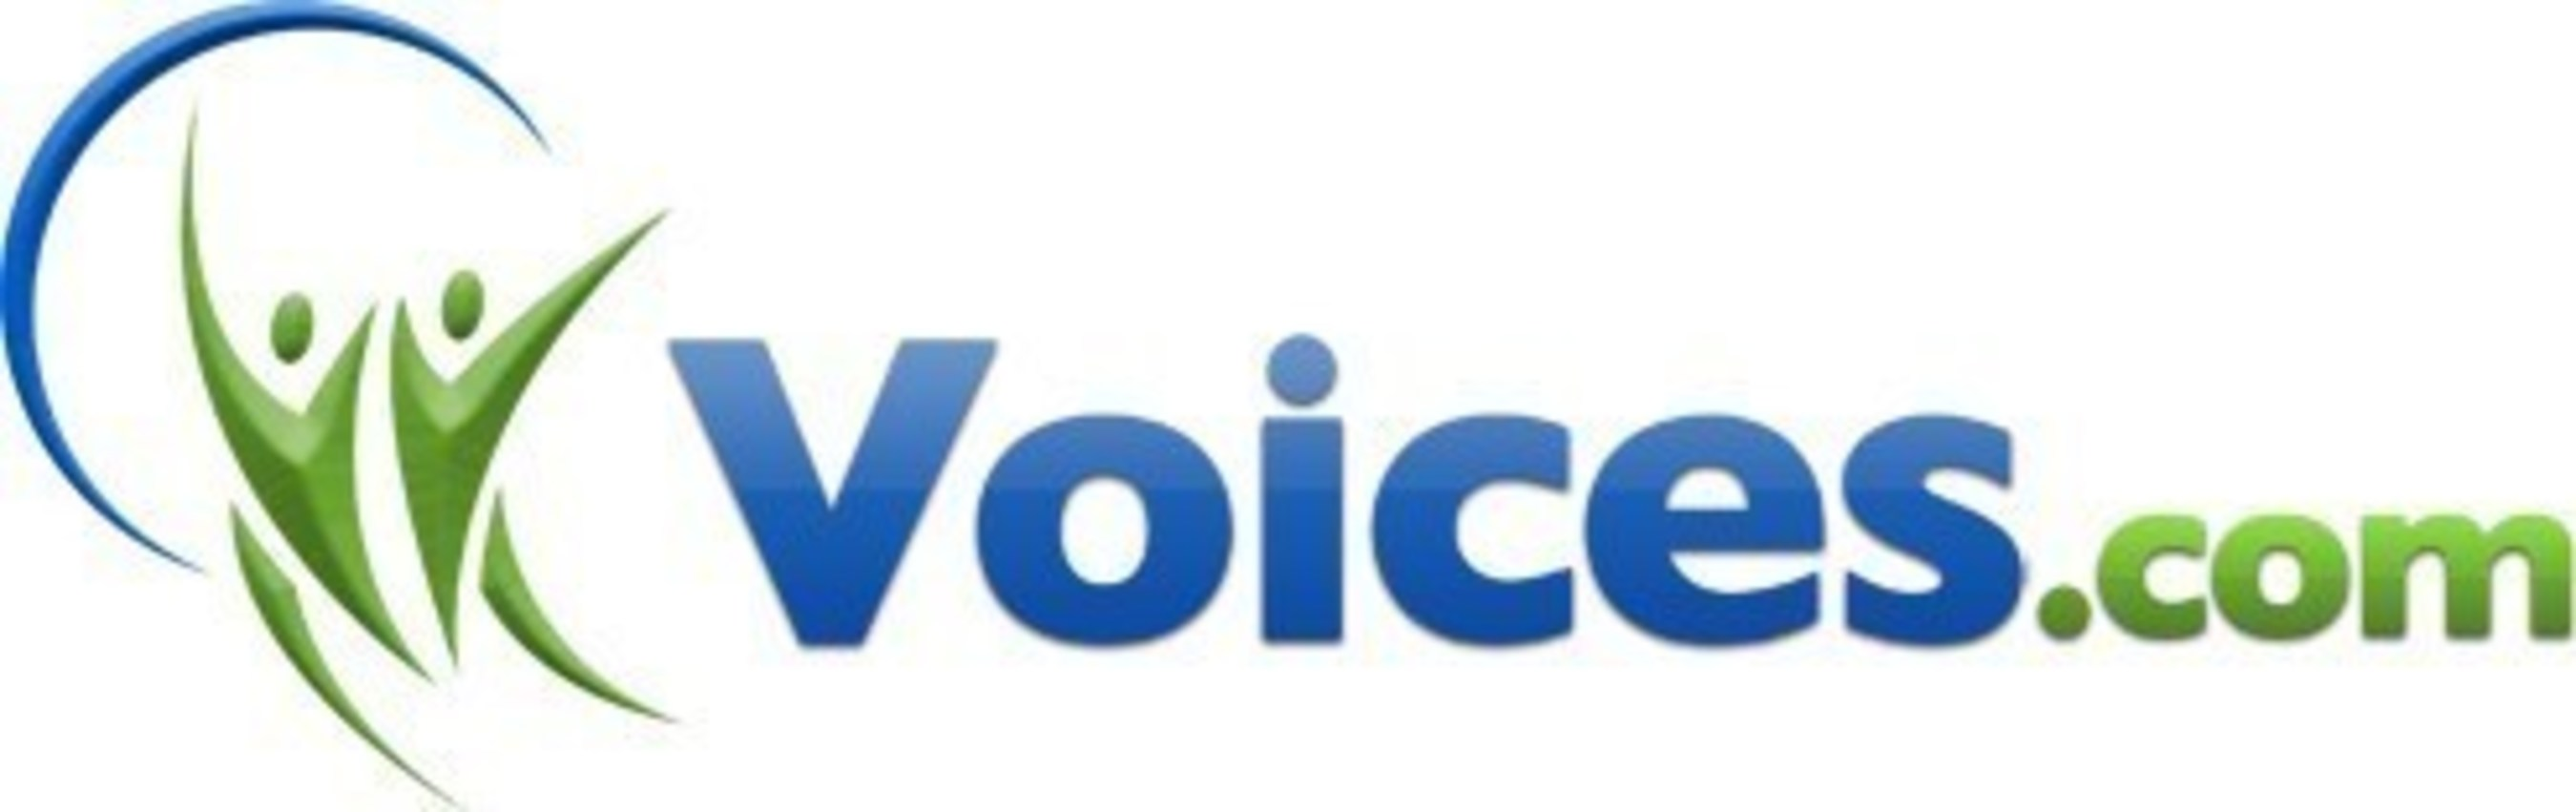 Voices.com Releases 2016 Outlook on Emerging Voice-Over Trends